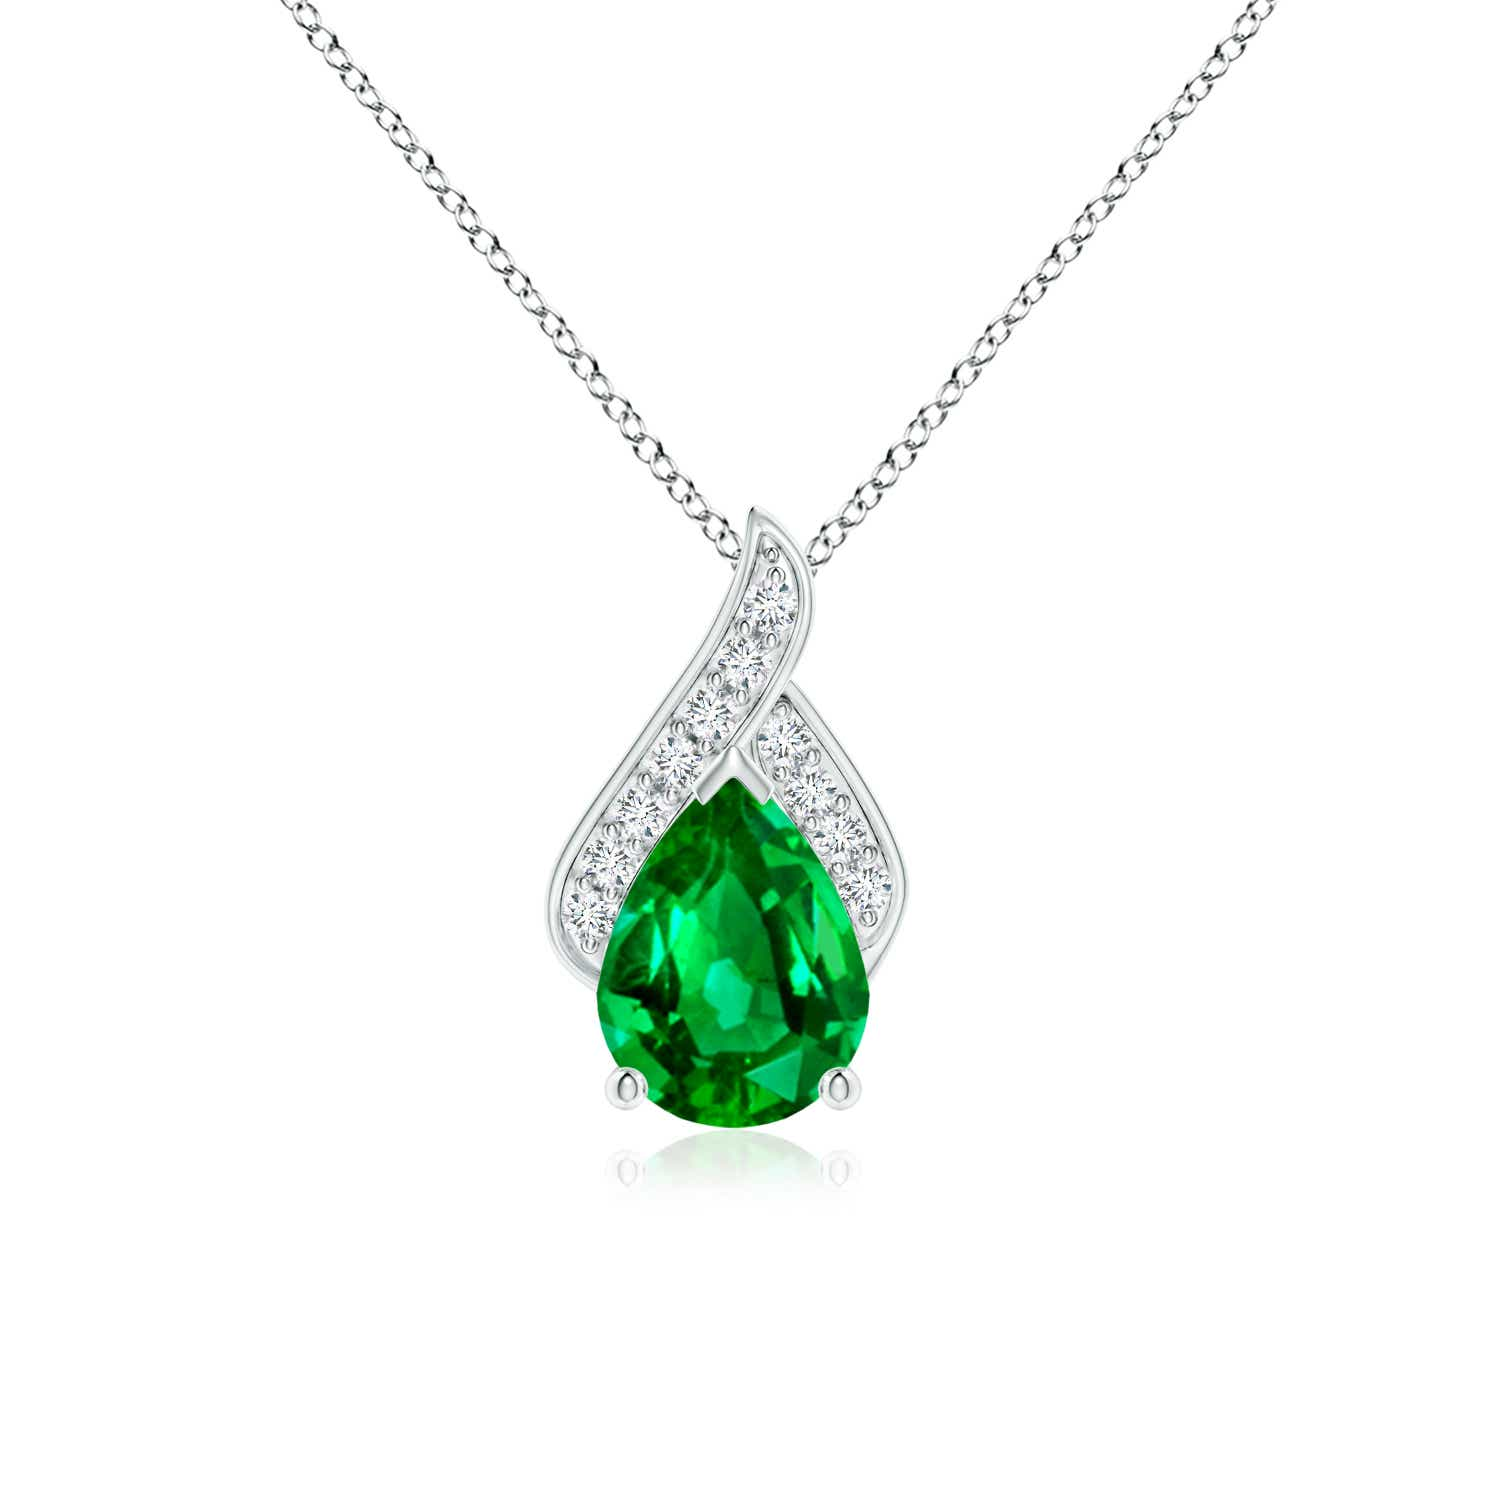 dcdf0e634 Solitaire Pear-Shaped Emerald Flame Pendant | Angara